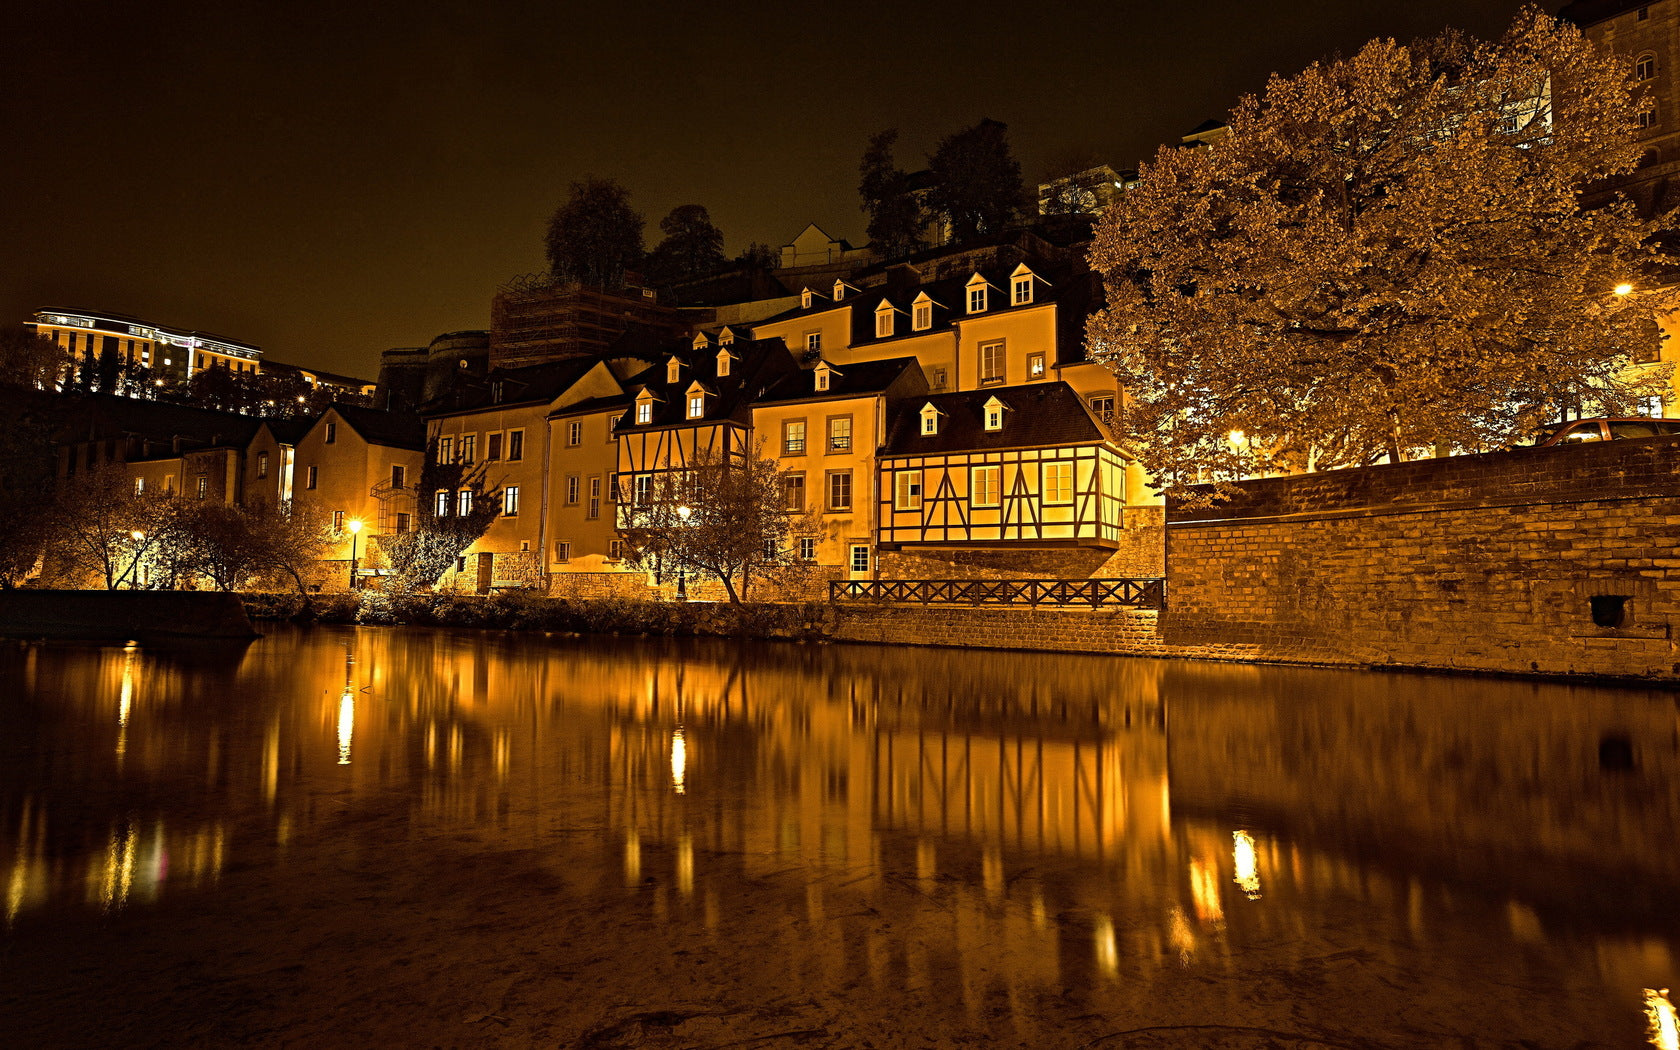 Luxembourg at night, at river level. A beautiful cabin style buildings sits on the river with the rest of the city slightly visible in the distance.